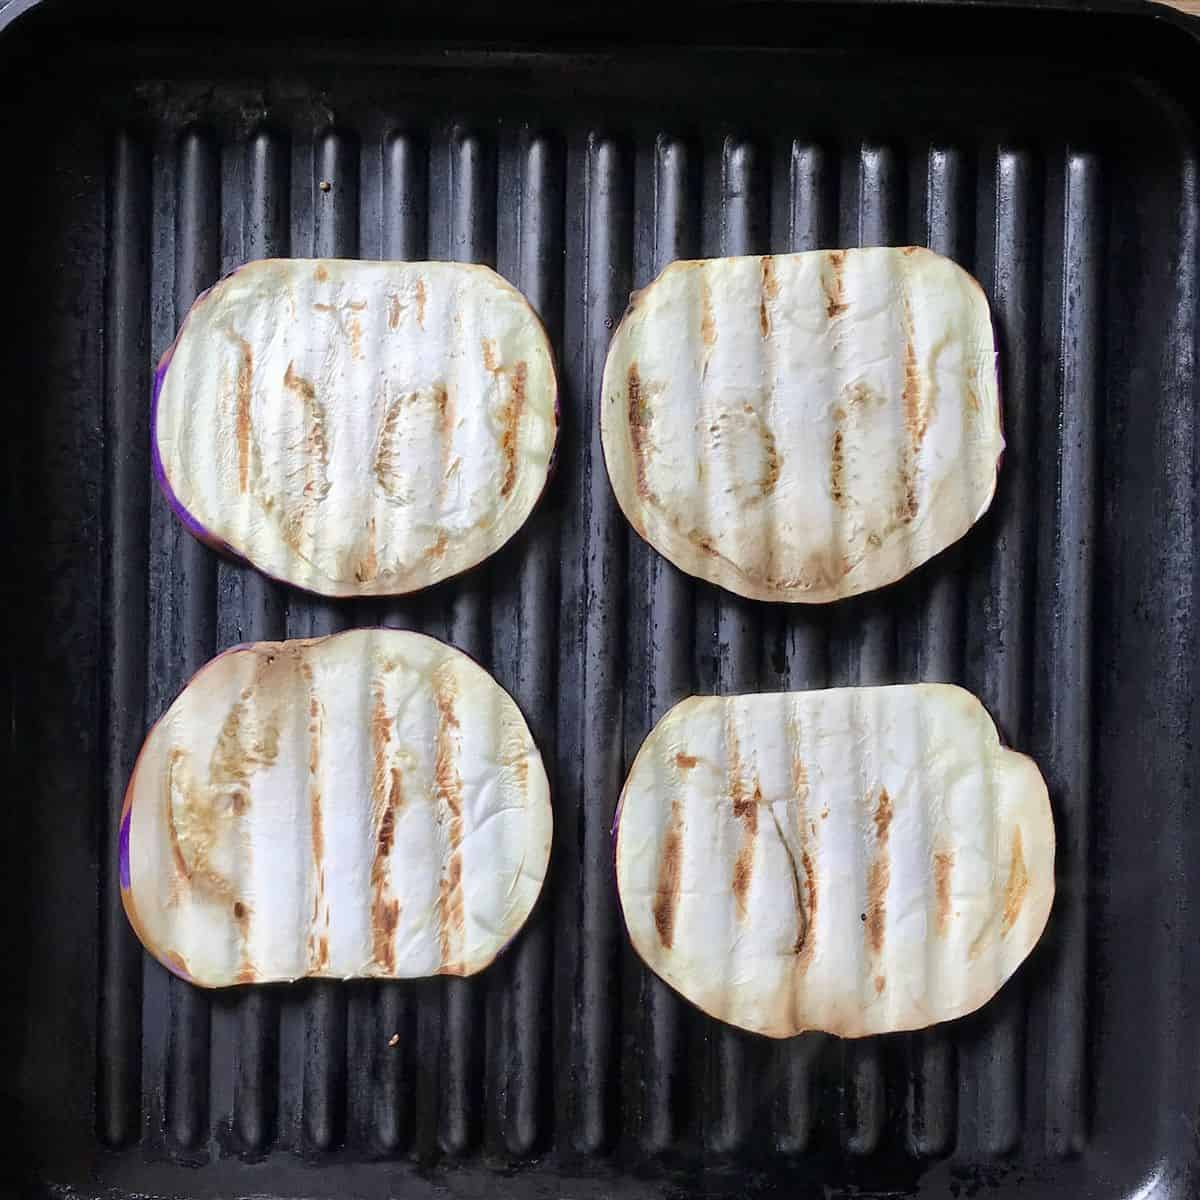 Grilling eggplants in a pan.